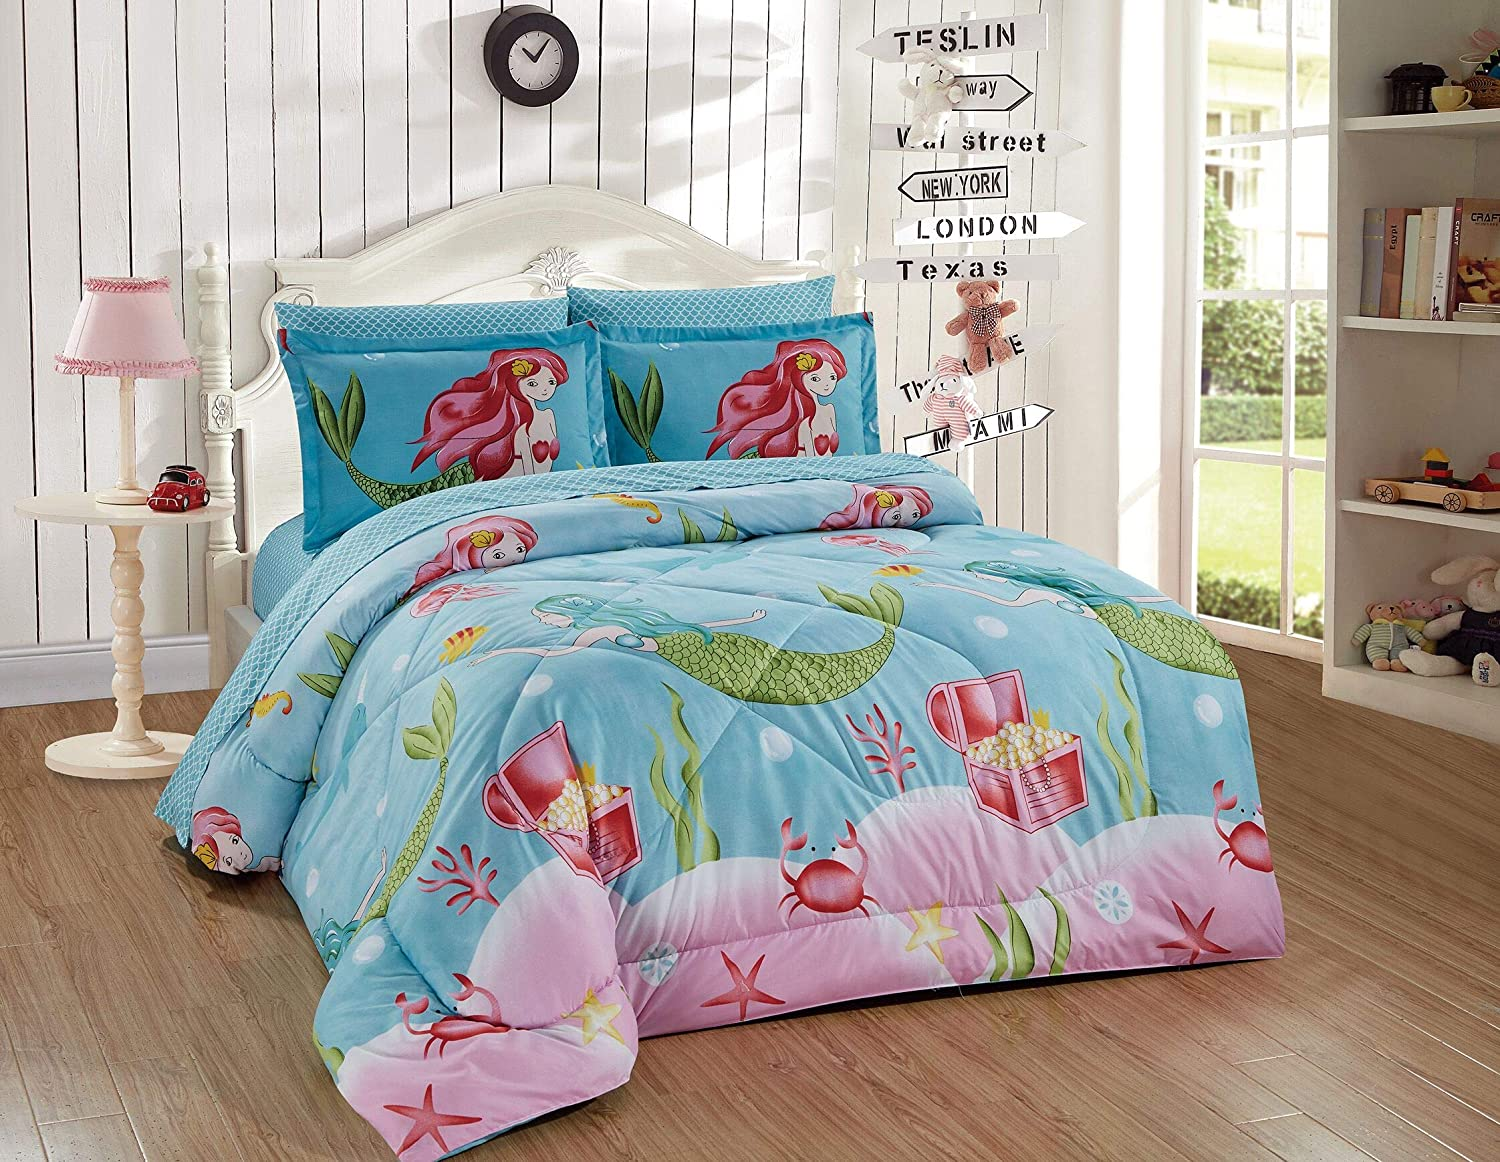 Better Home Style Blue Pink Green Under the Sea Life Mermaid with Crabs and Starfish Printed Fun Design 5 Piece Comforter Bedding Set for Girls Teens Bed in a Bag with Sheets # Mermaid Treasure (Full)